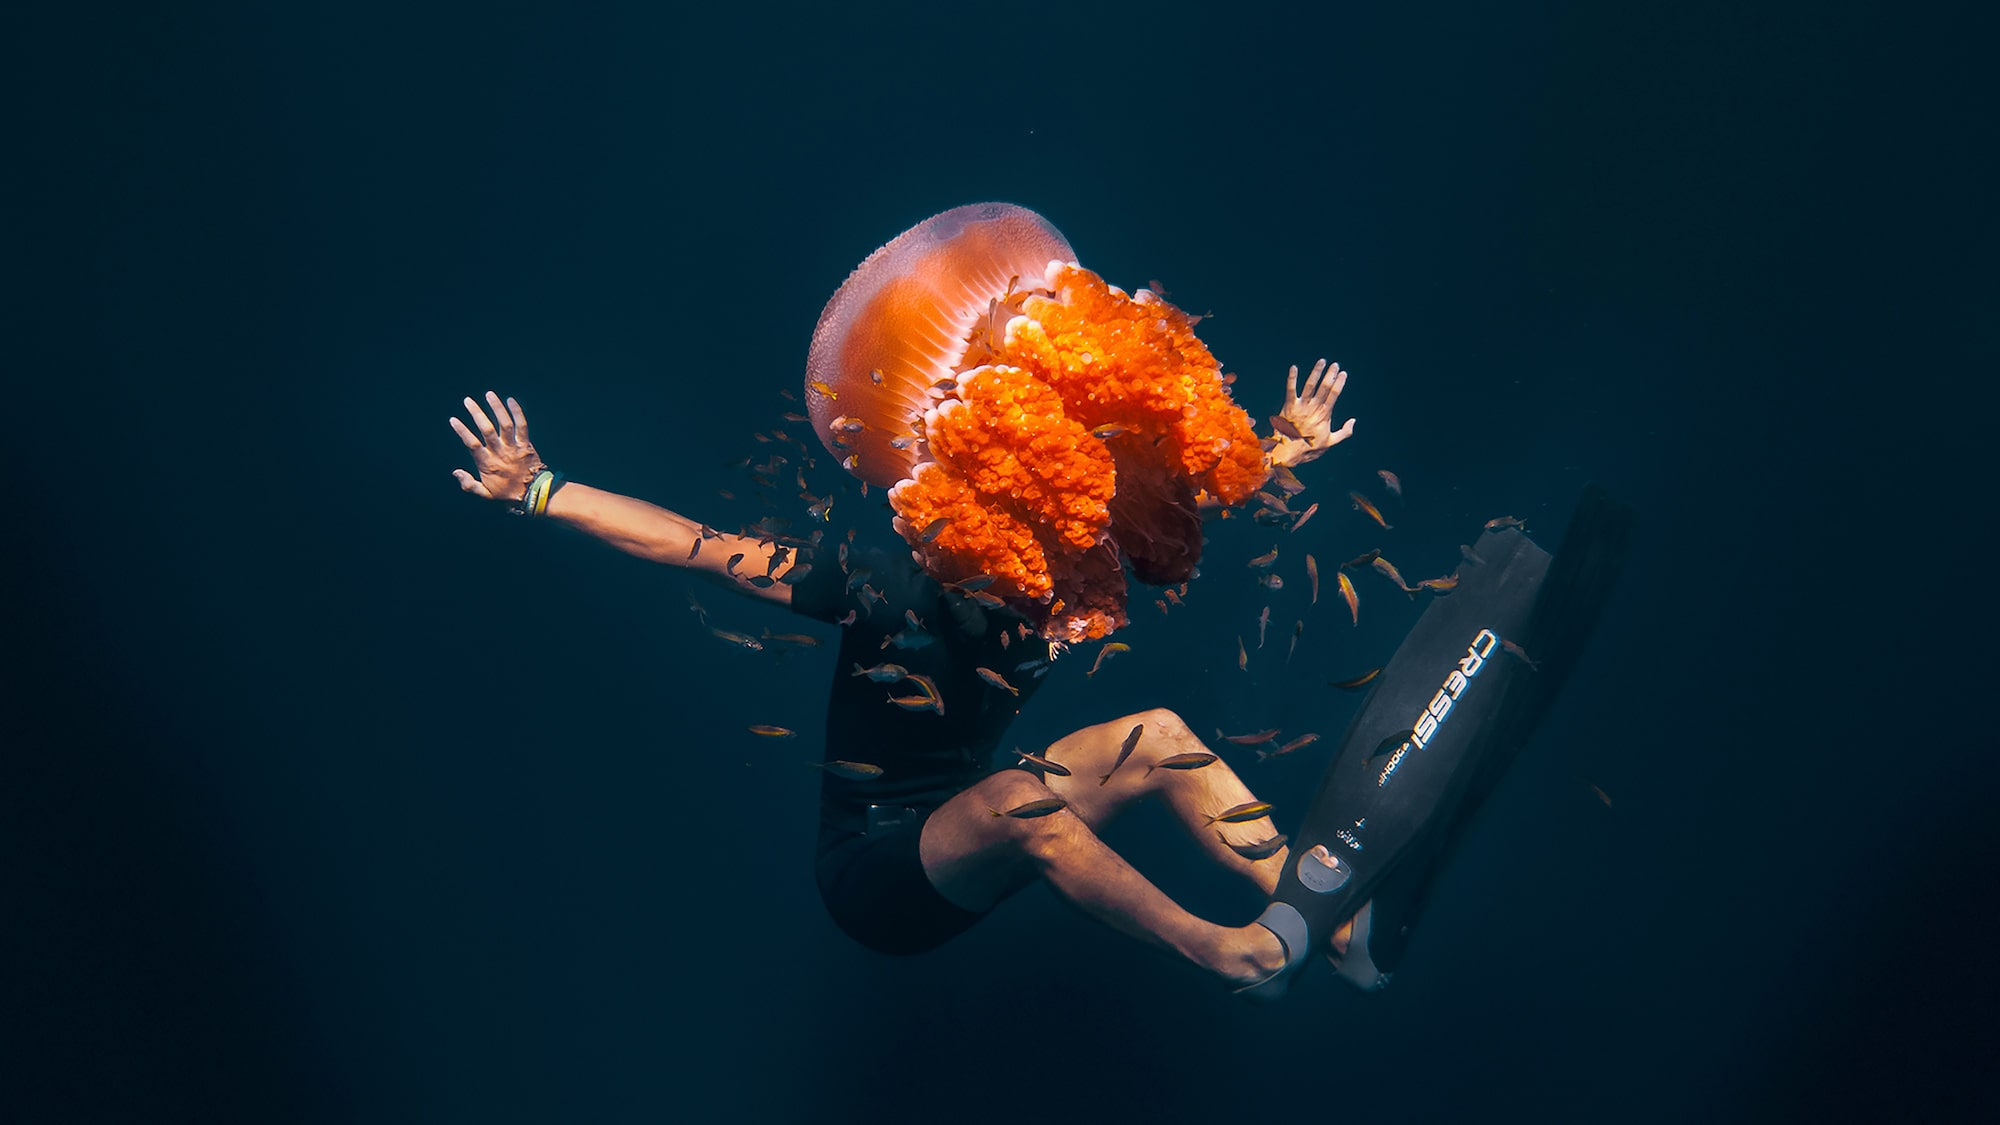 danas macijauskas sony rx100m4 a diver underwater with his face obscured by a jellyfish